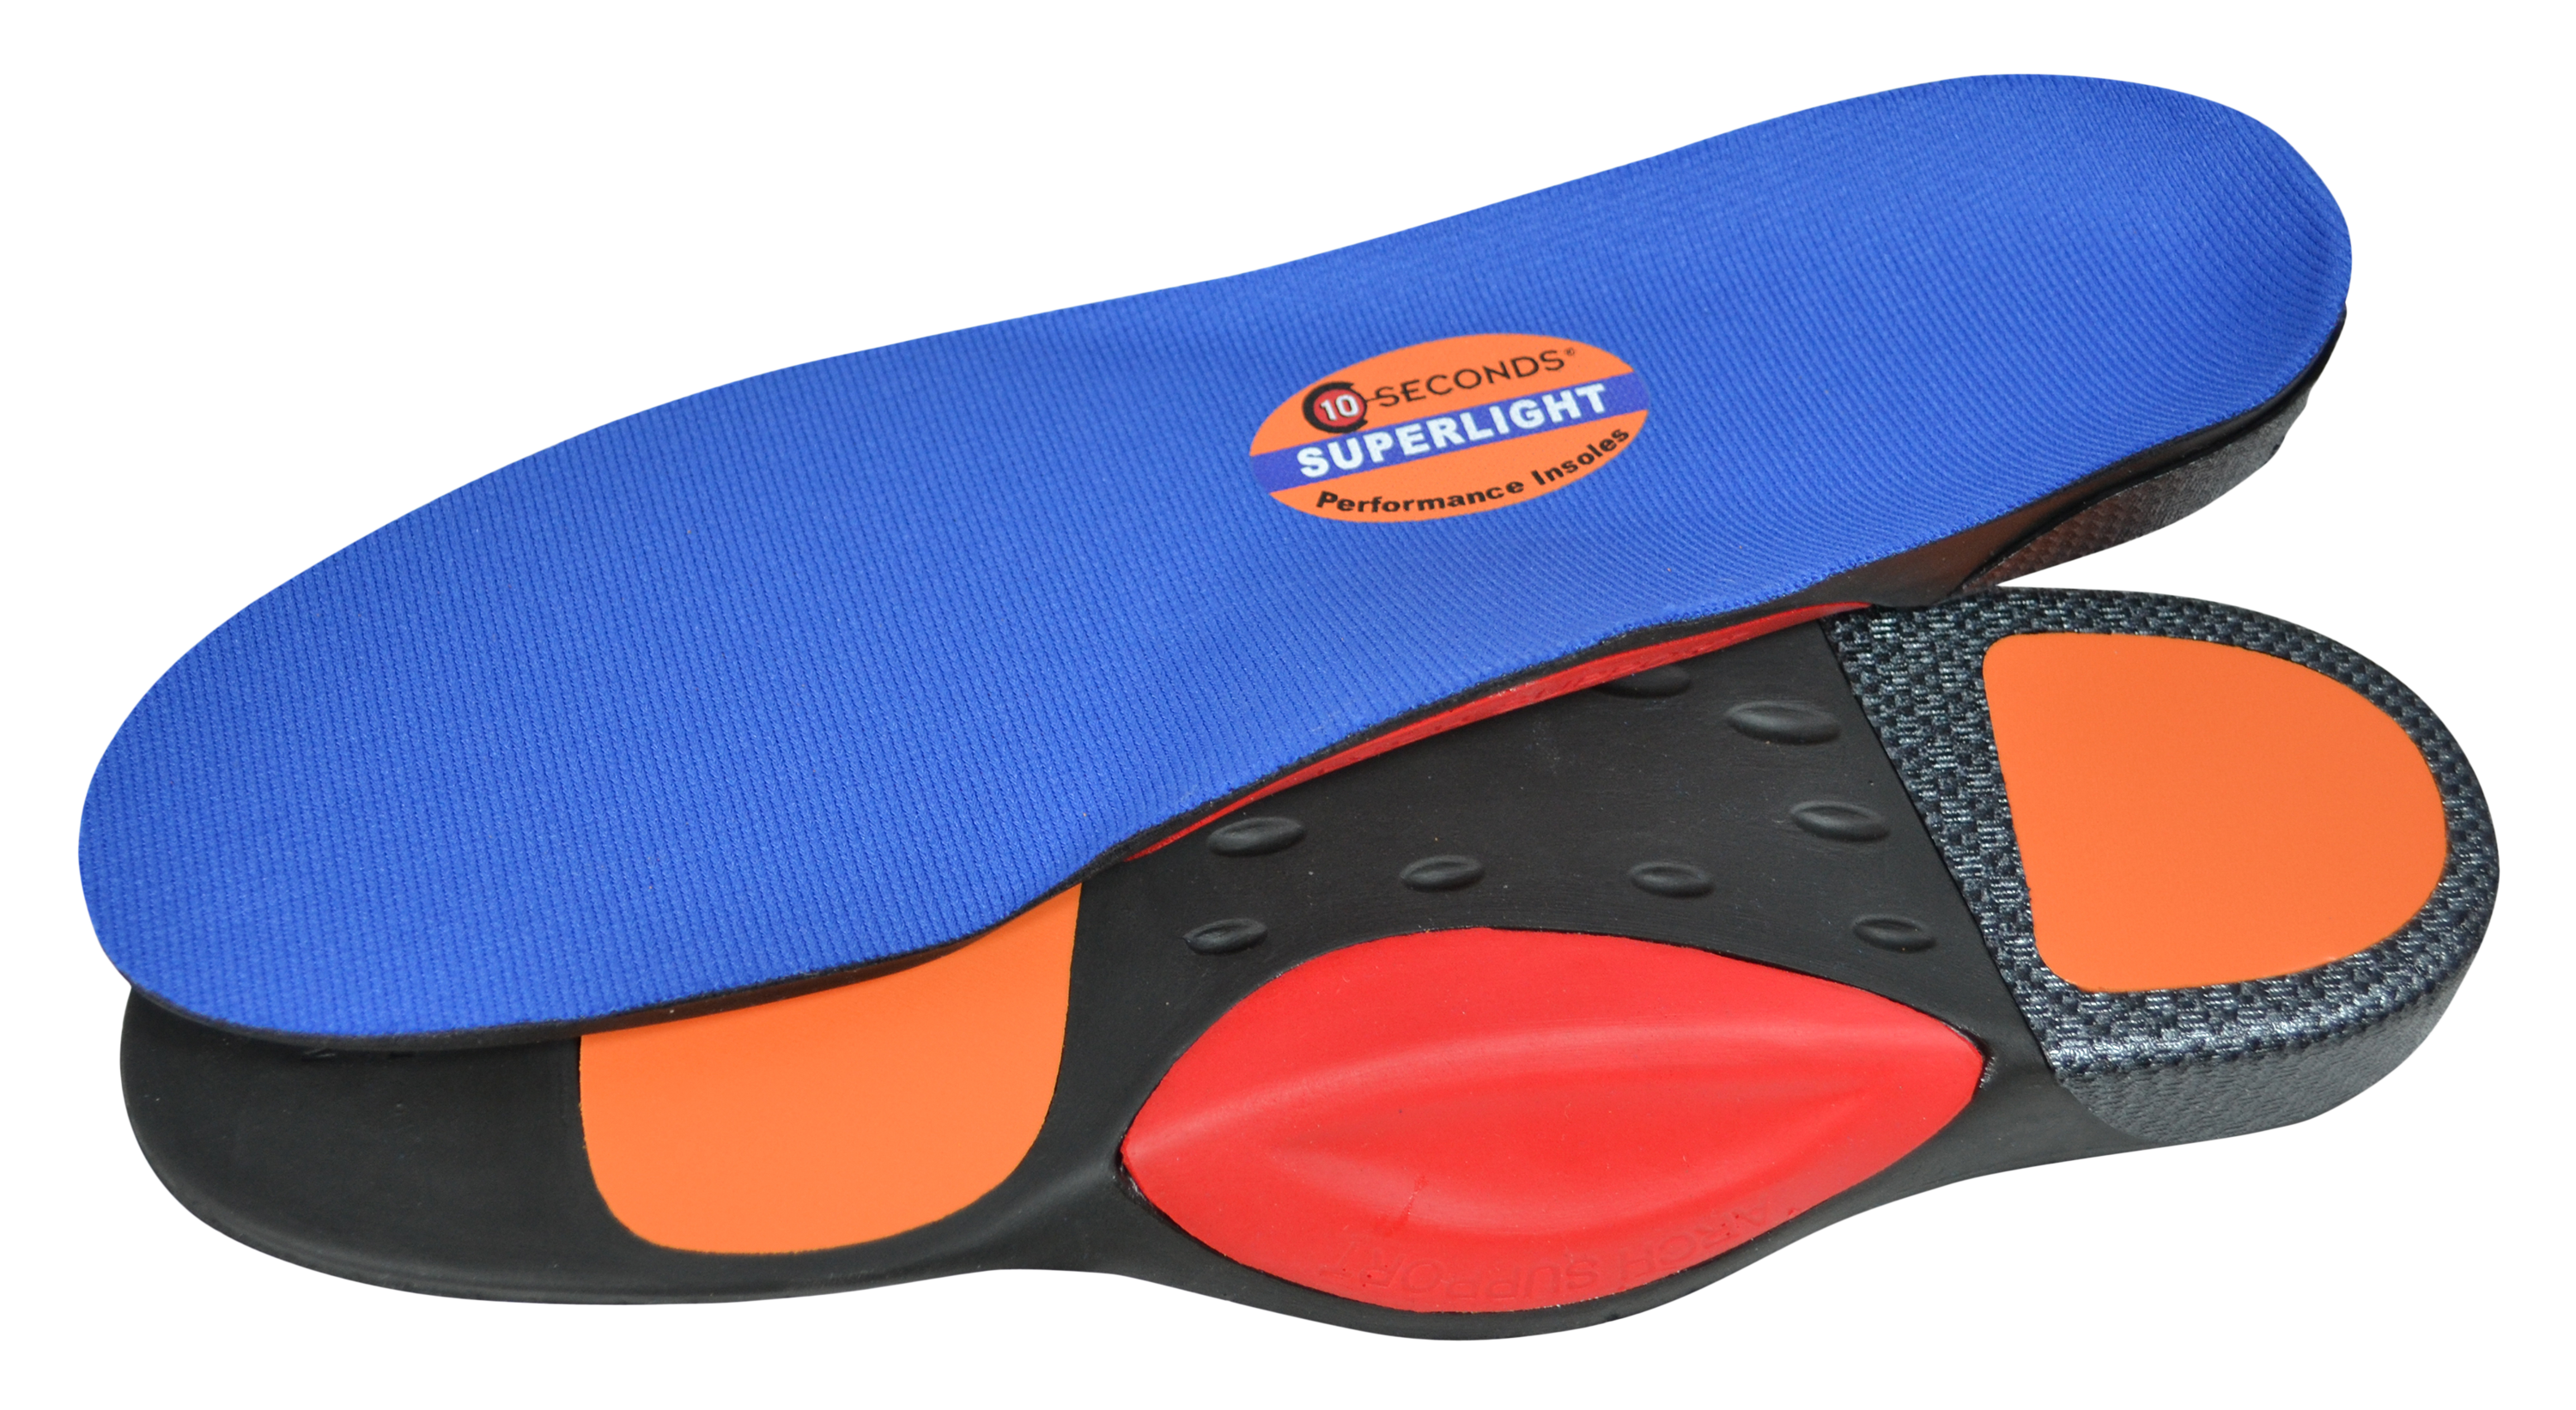 10 Seconds Classics Super Light Performance Insoles